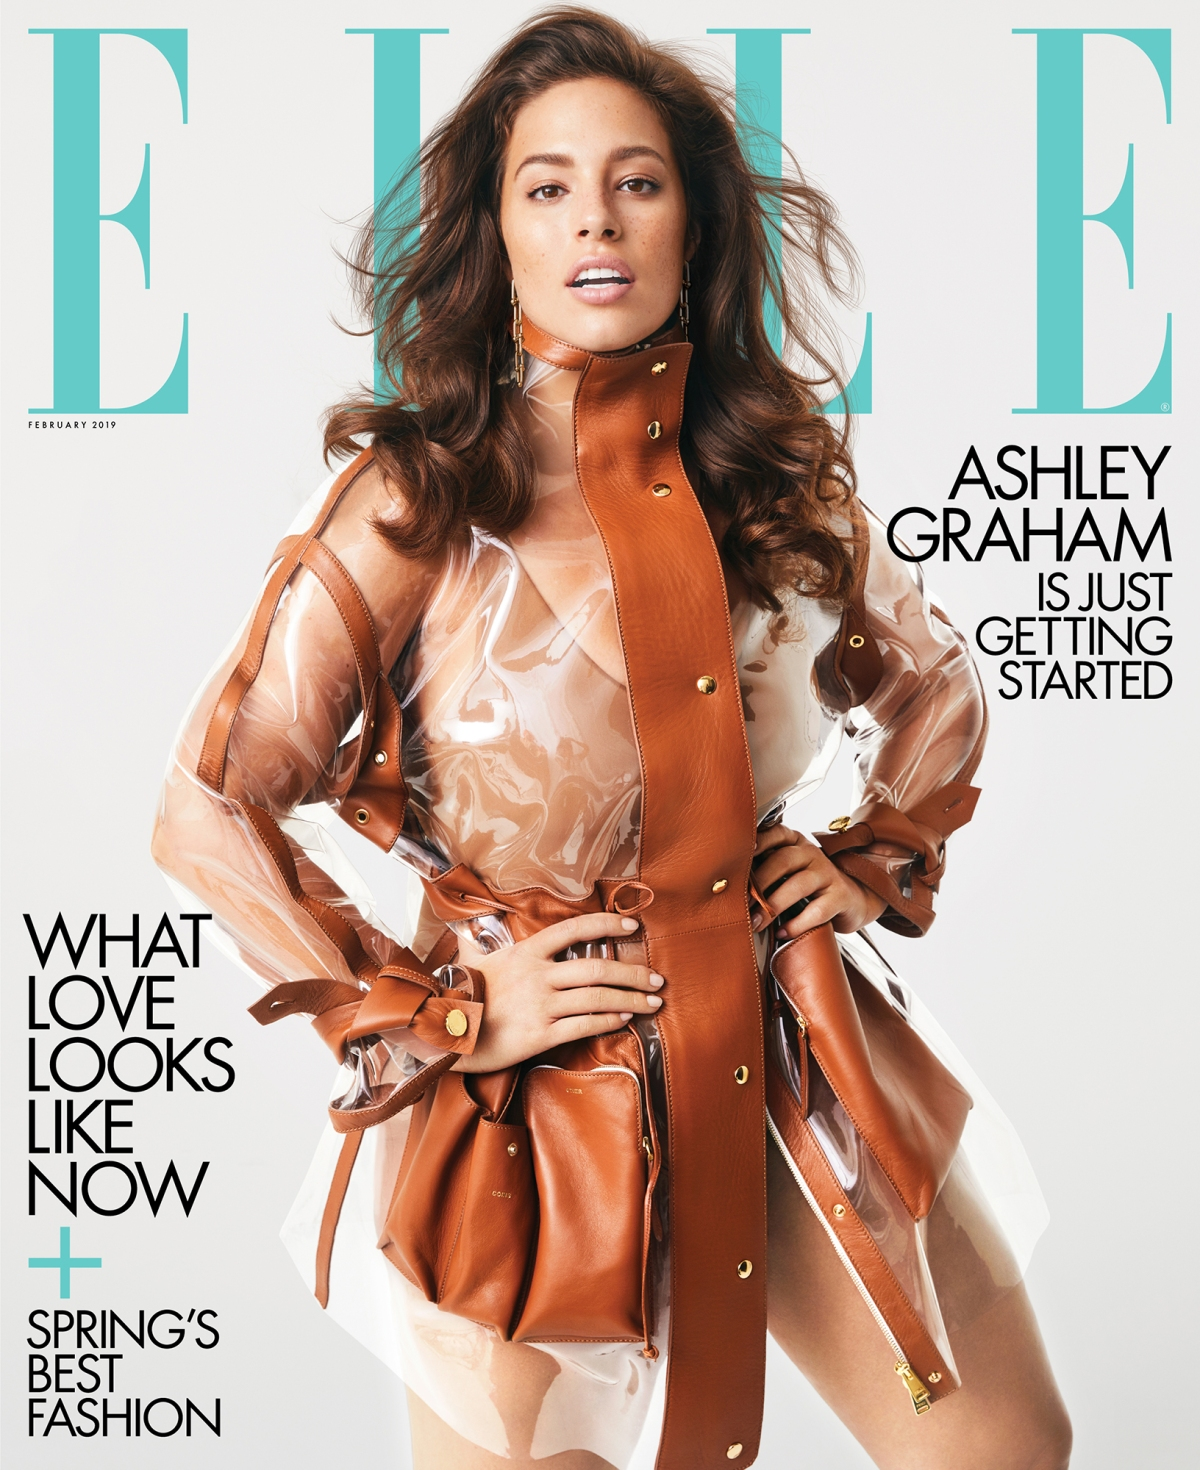 Ashley Graham Shows Killer Curves, Reveals Her Key to Marriage: 'Just Have Sex!'